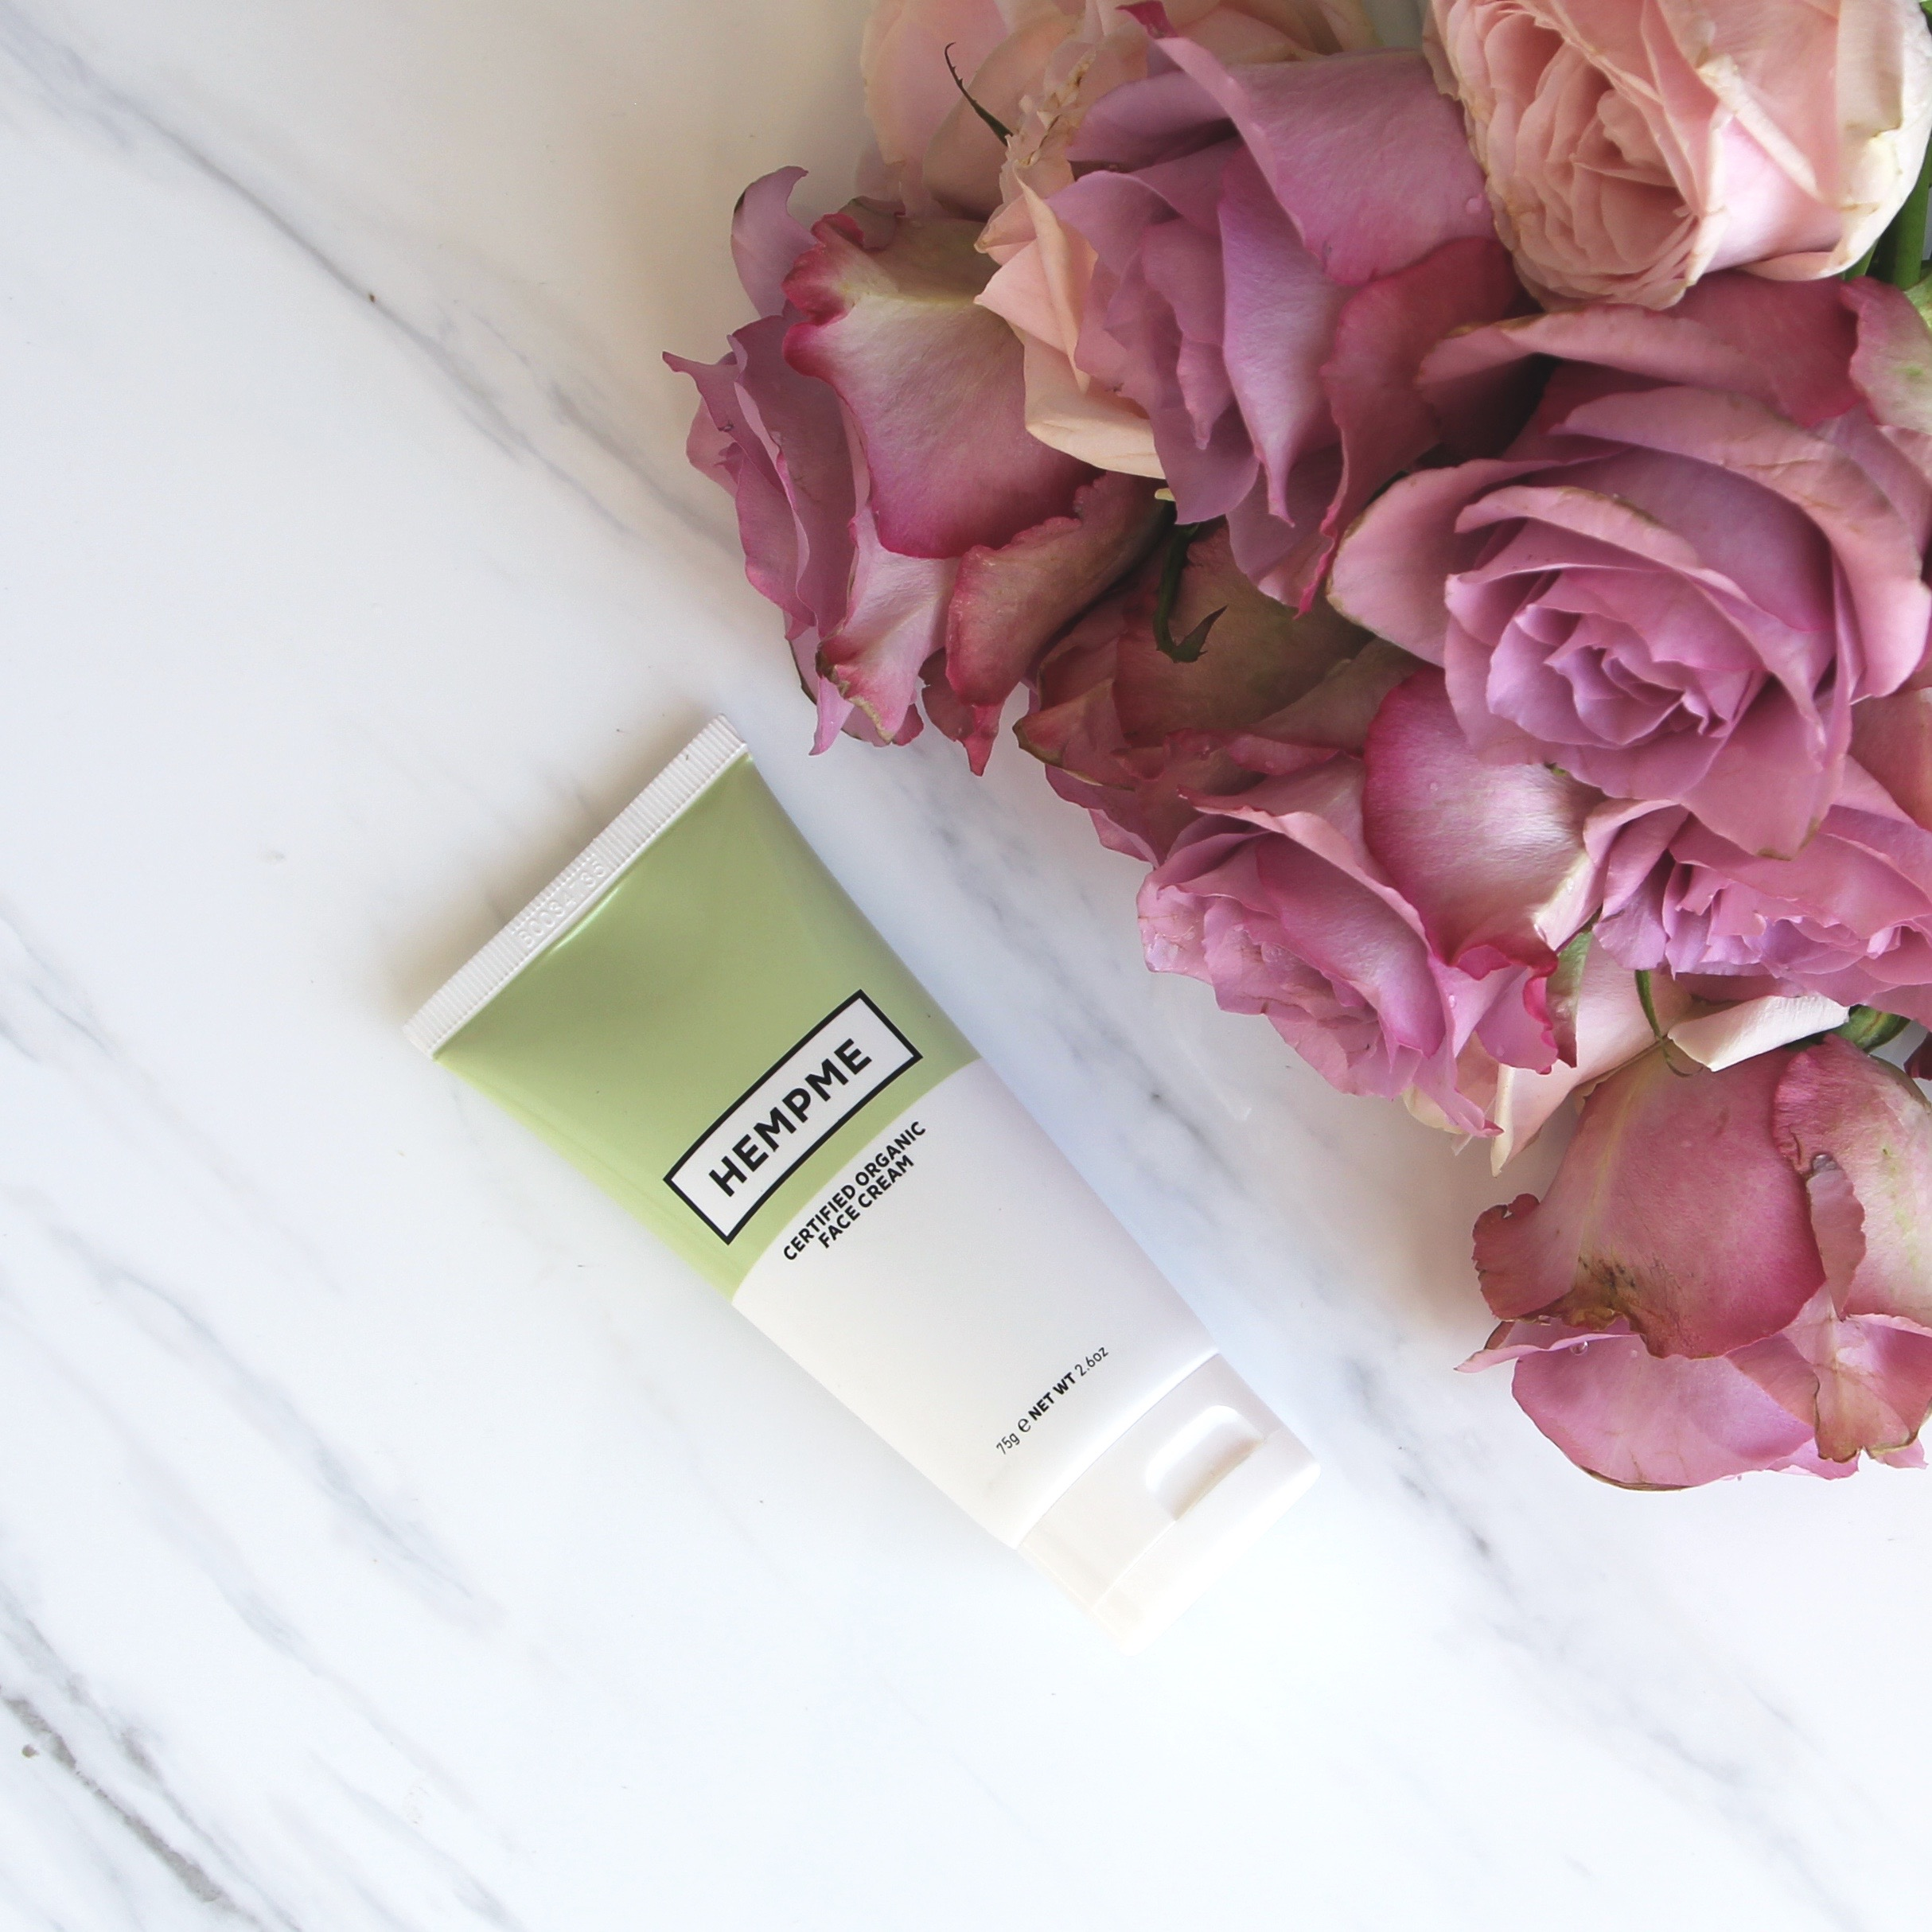 Hemp Me is a new Australian brand that harnesses the power of hemp seed oil in its products. It's first product is a certified organic face cream.